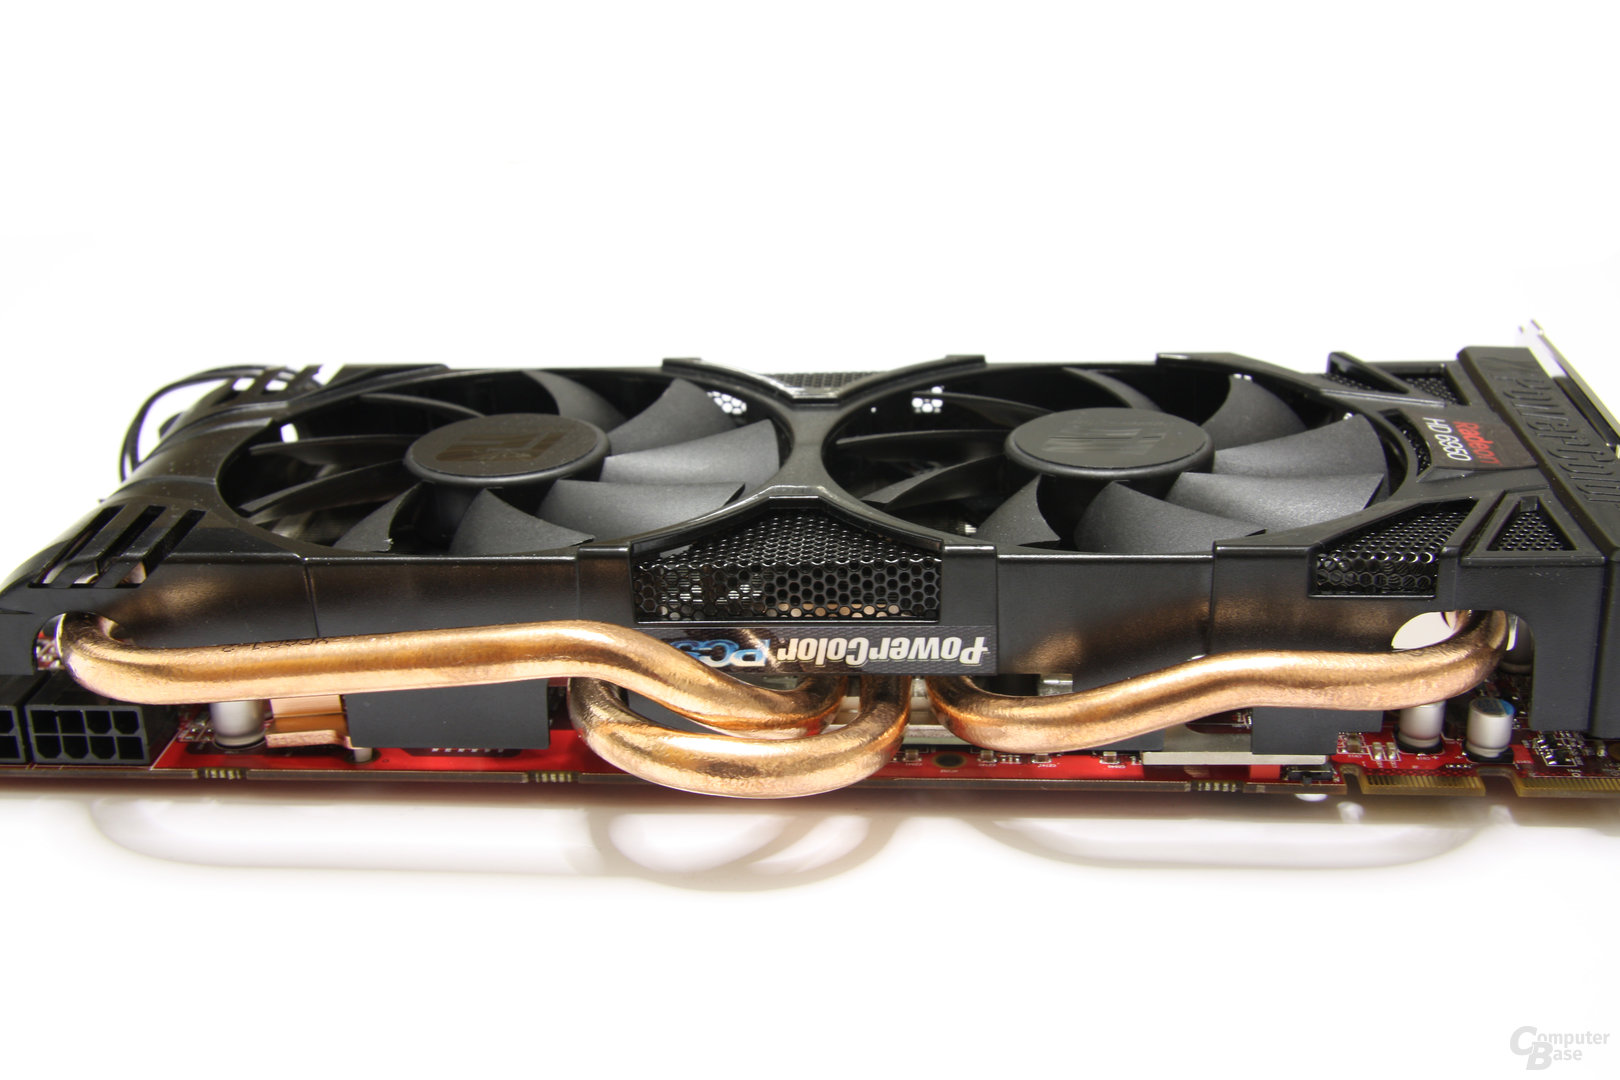 Radeon HD 6950 PCS++ Heatpipes 2